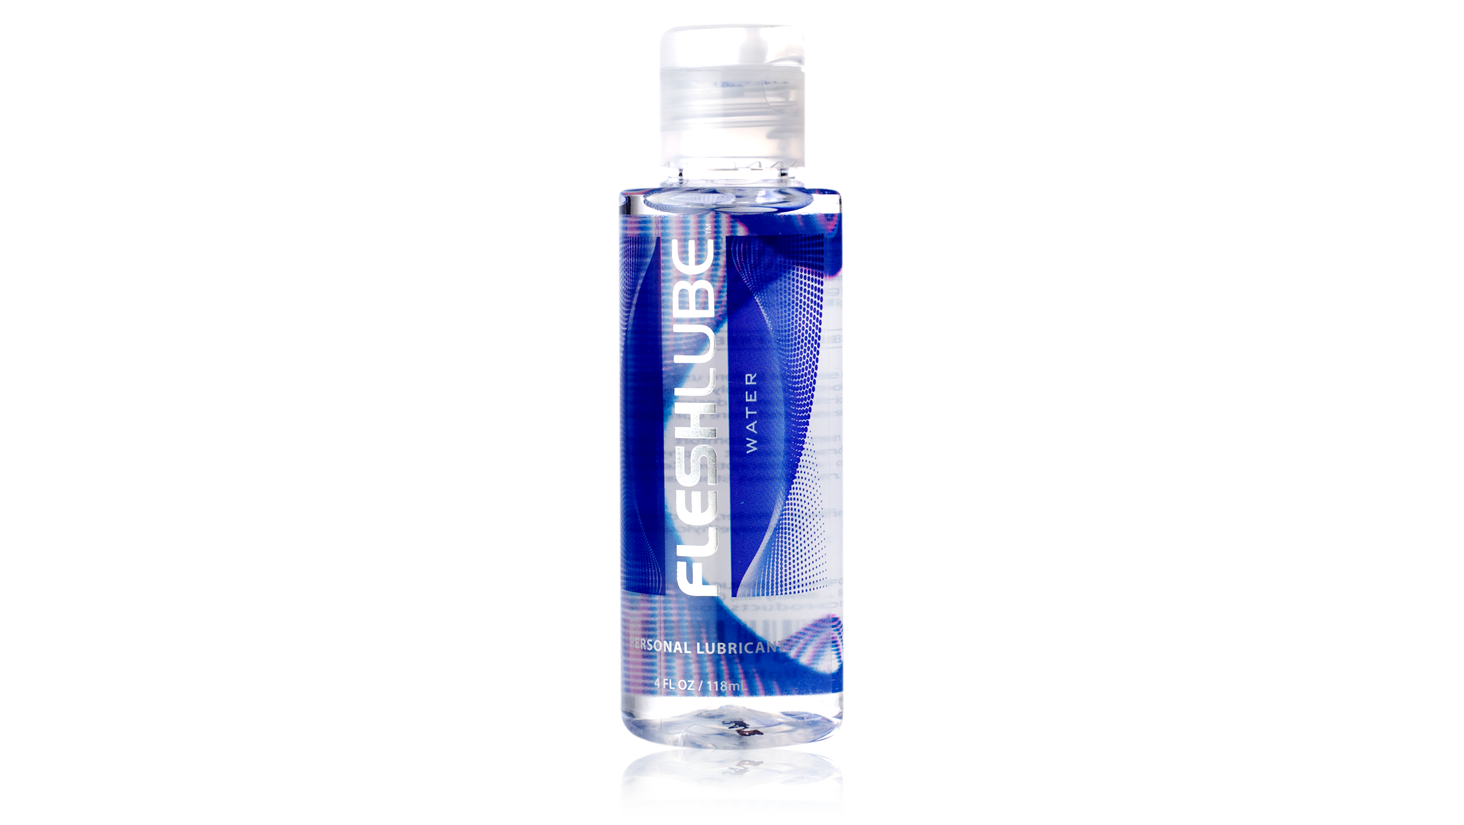 Fleshlube® Water (4 oz) slider image.